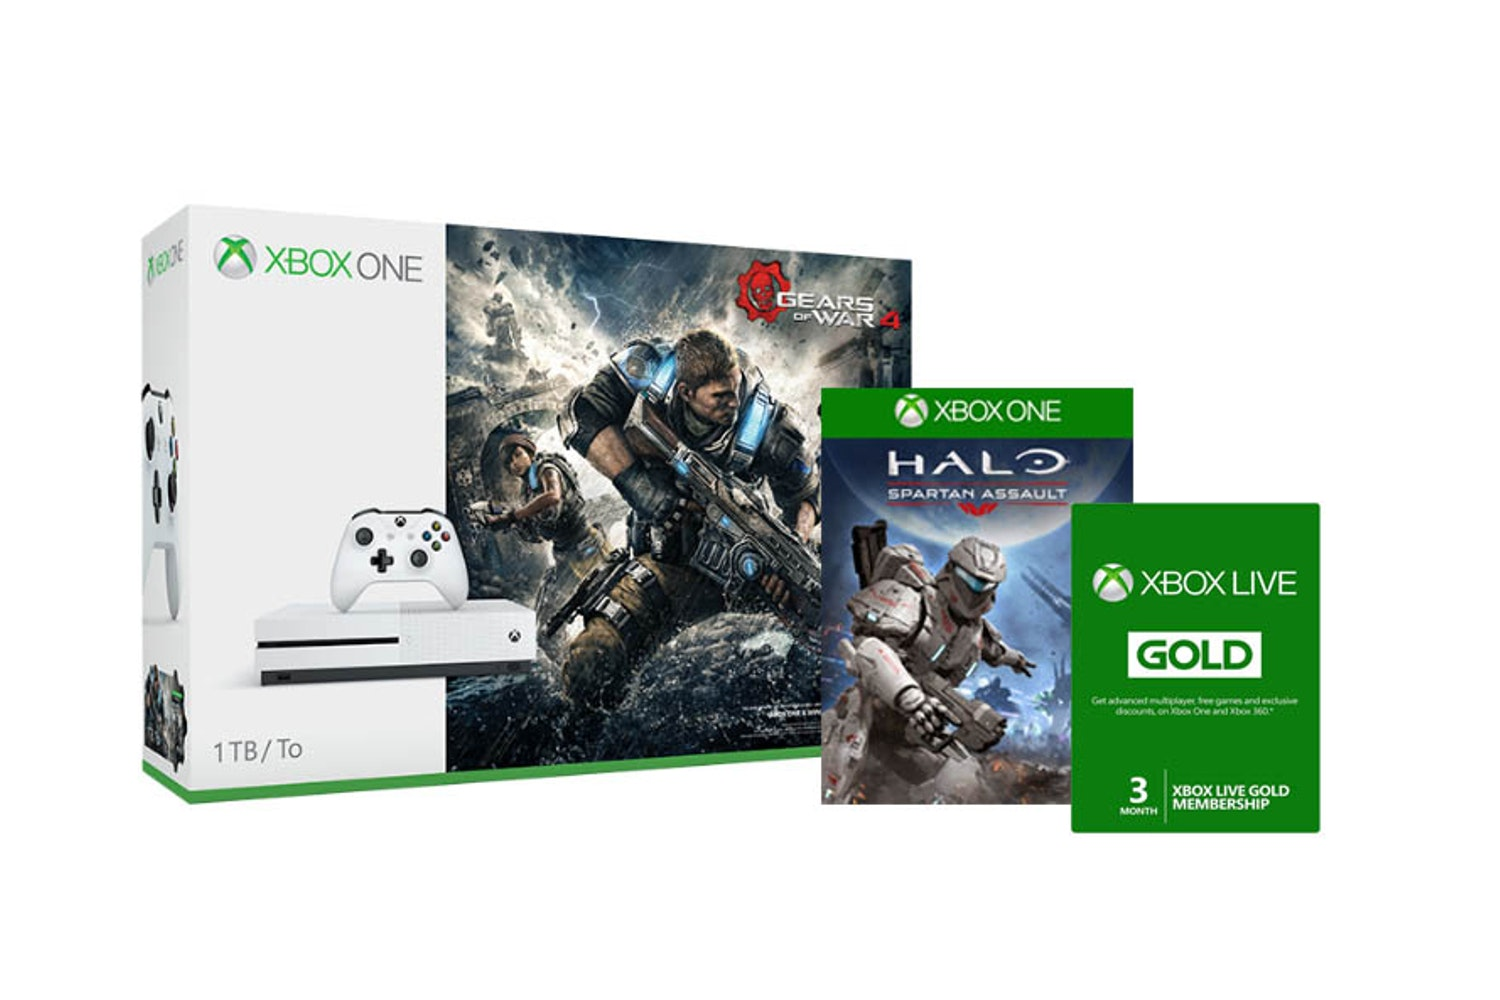 Xbox One S 1TB White | Gears Of War 4 Bundle